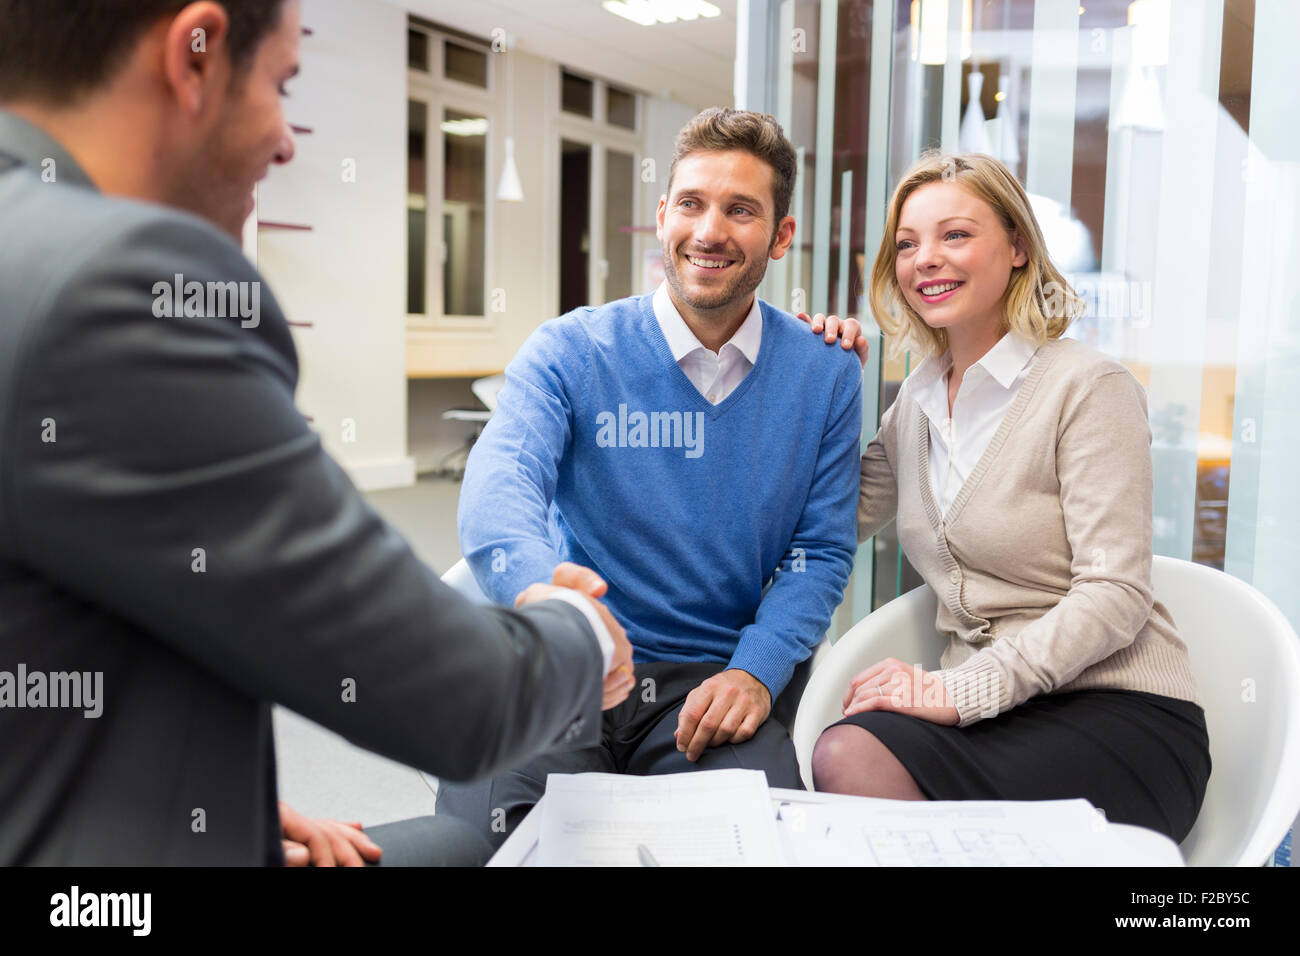 Businessman shaking hands with woman in office Banque D'Images